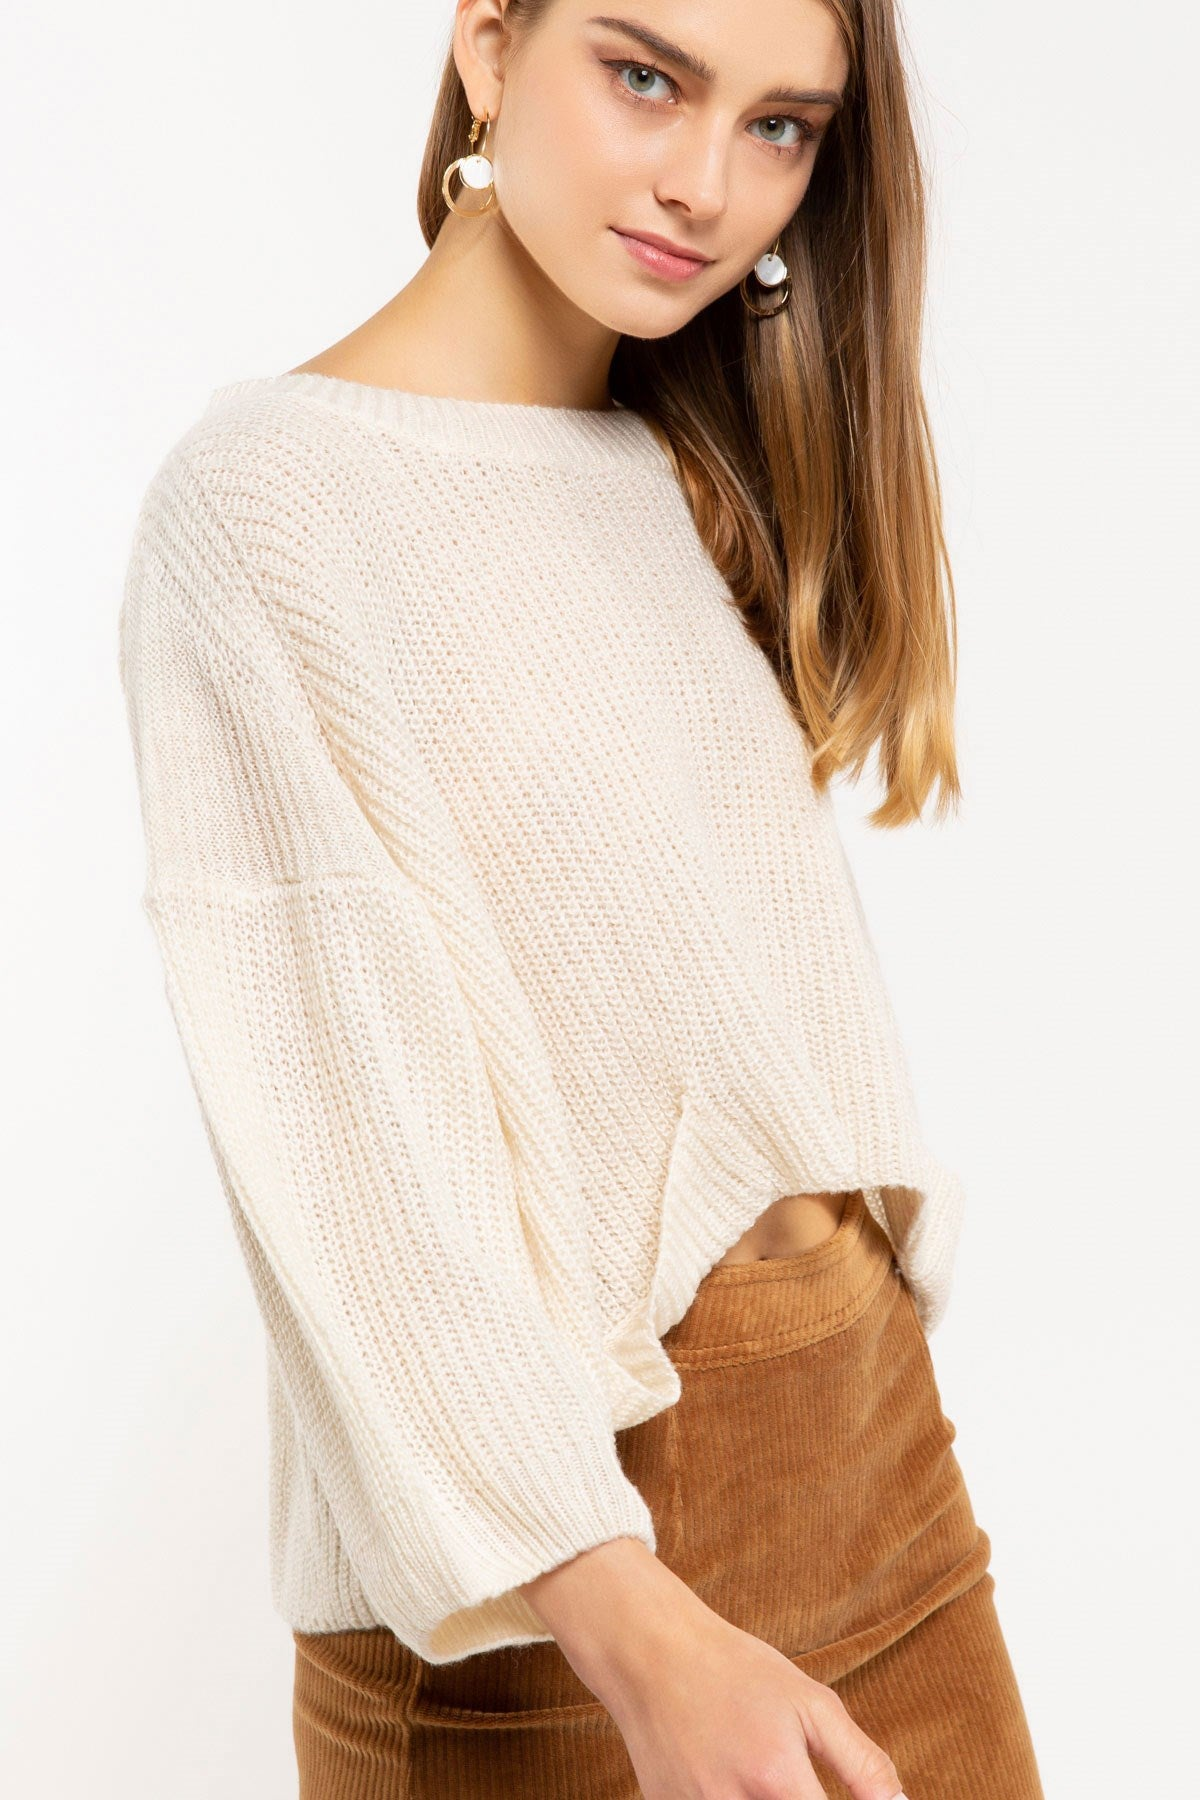 Boxy Cream Sweater